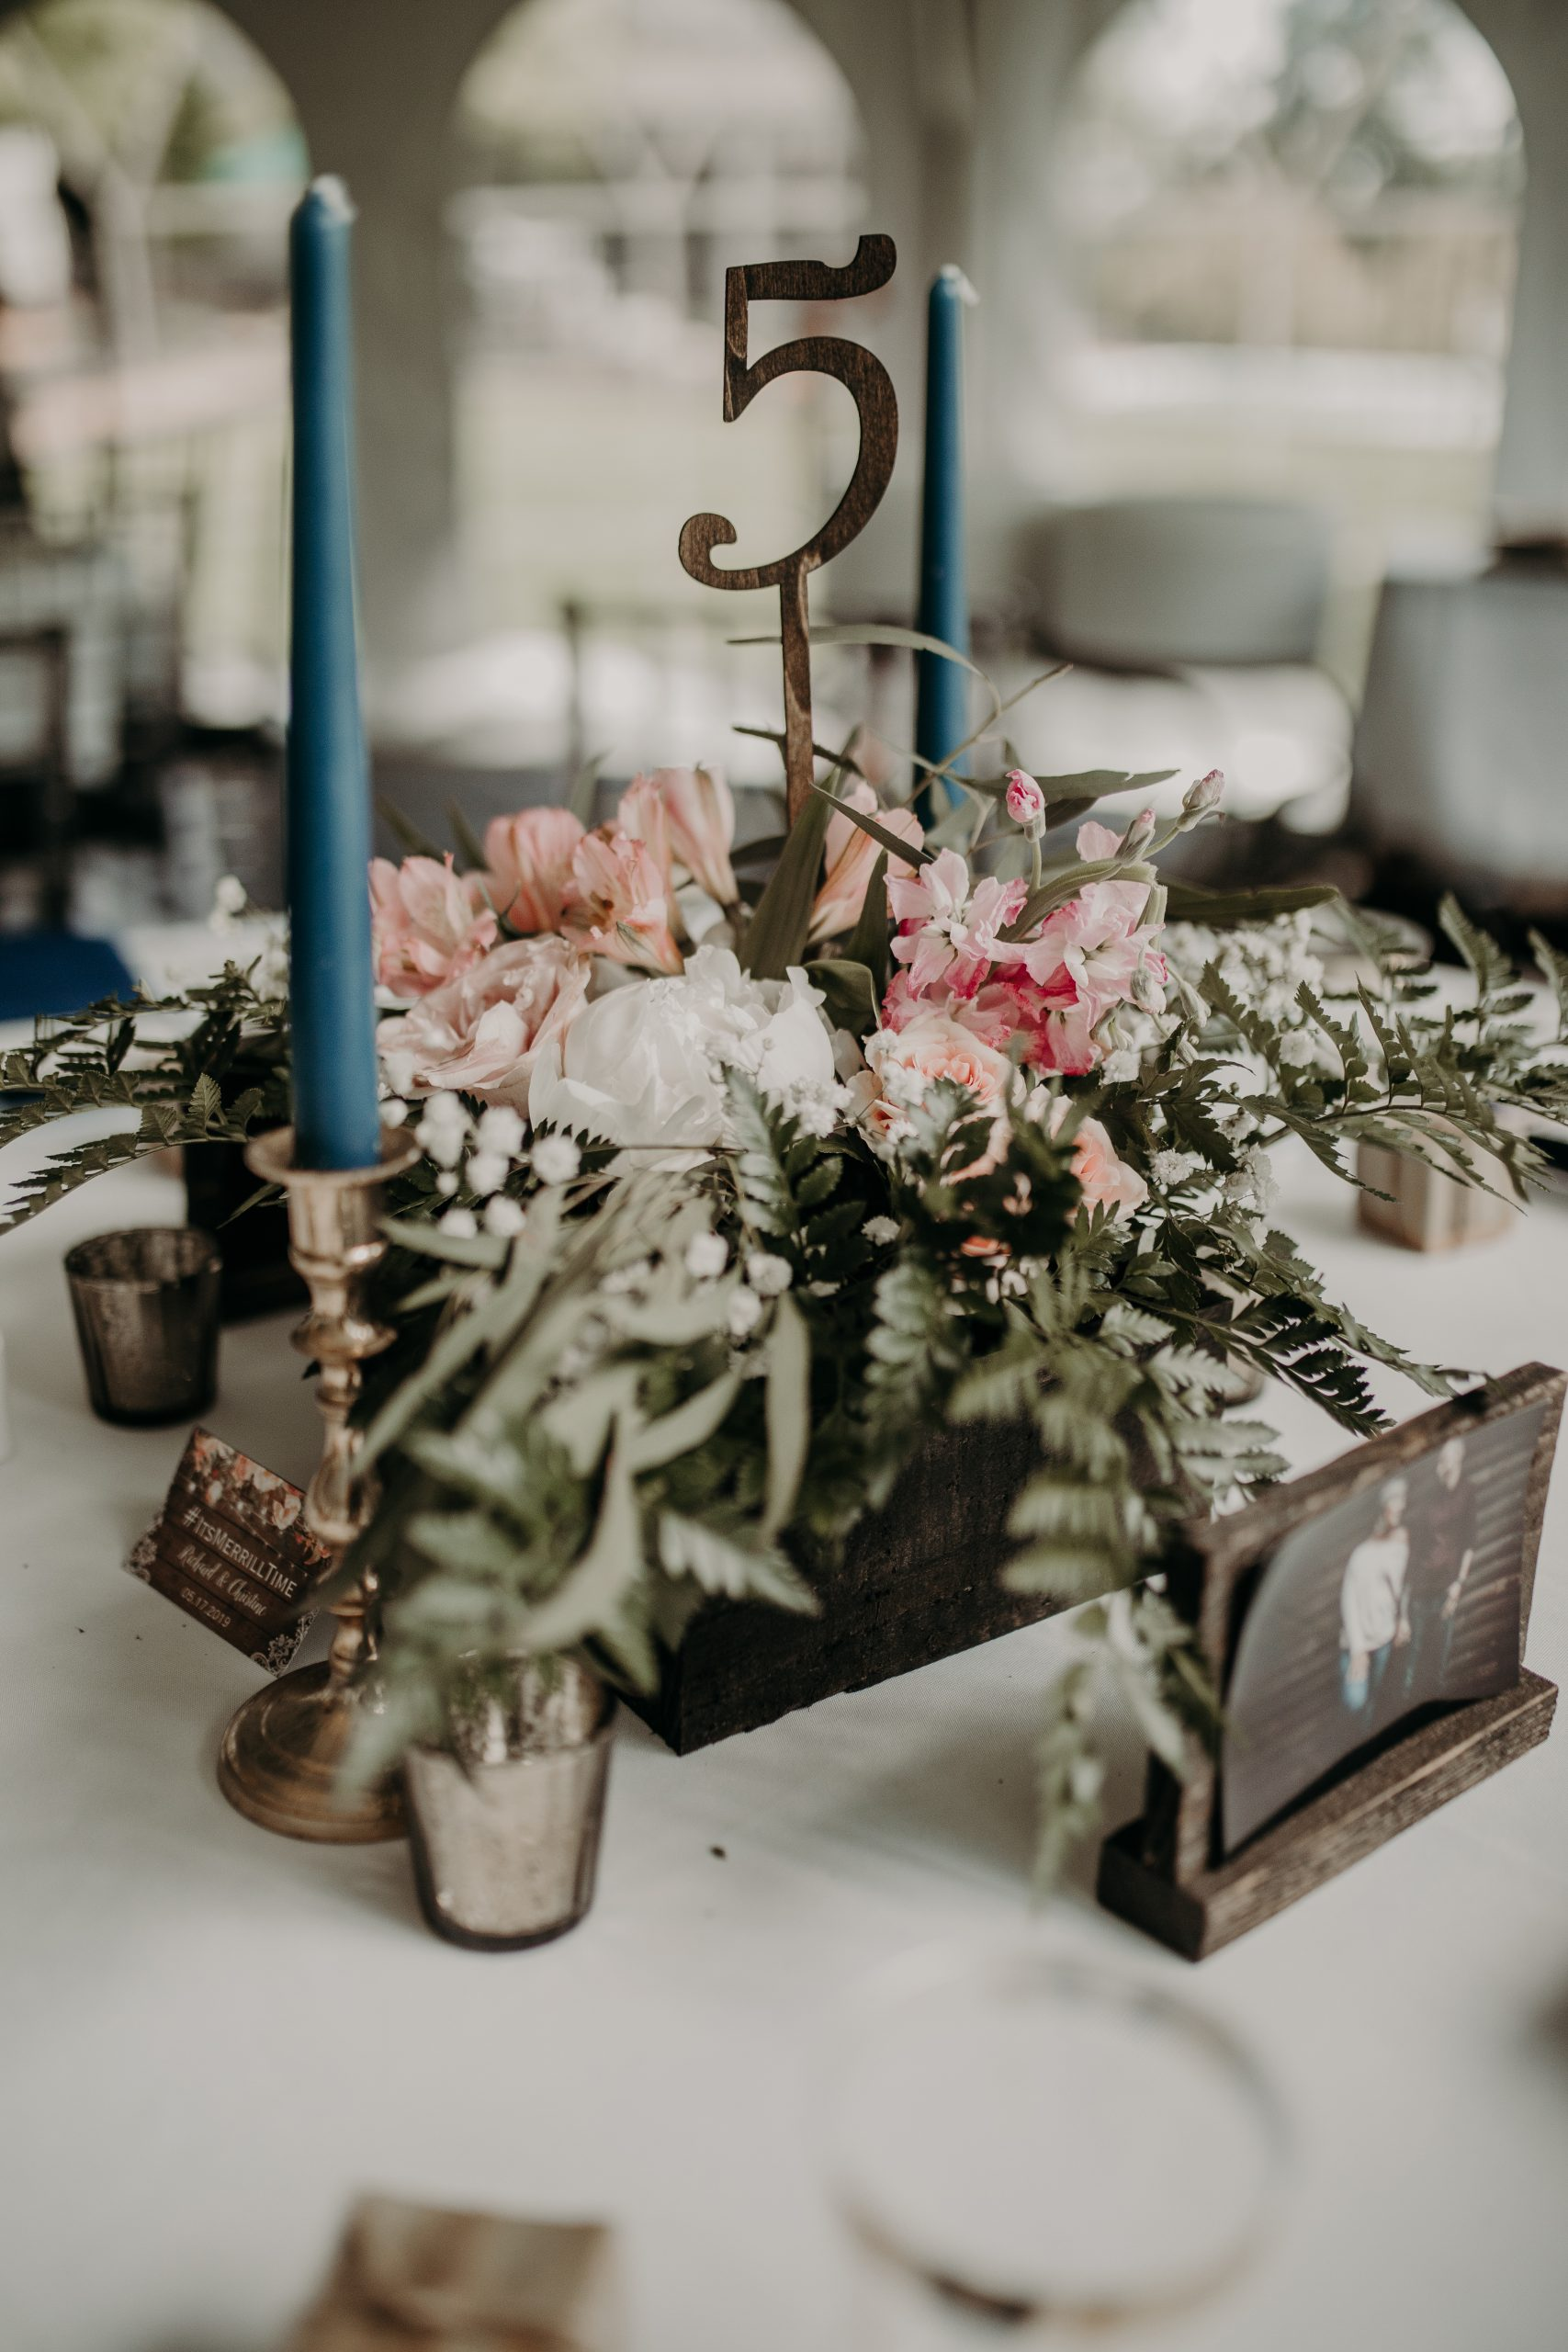 Centerpieces to each table varied, which added texture and dimension. Tapered blue candles with table numbers and florals kept your eyes on the reason for the day. Christine and Richard wed on the Chestnut Hill Villa grounds on May of 2019. This organic ethereal styled wedding was captured by Garnet Dahlia Photography and featured on Dream Weddings.